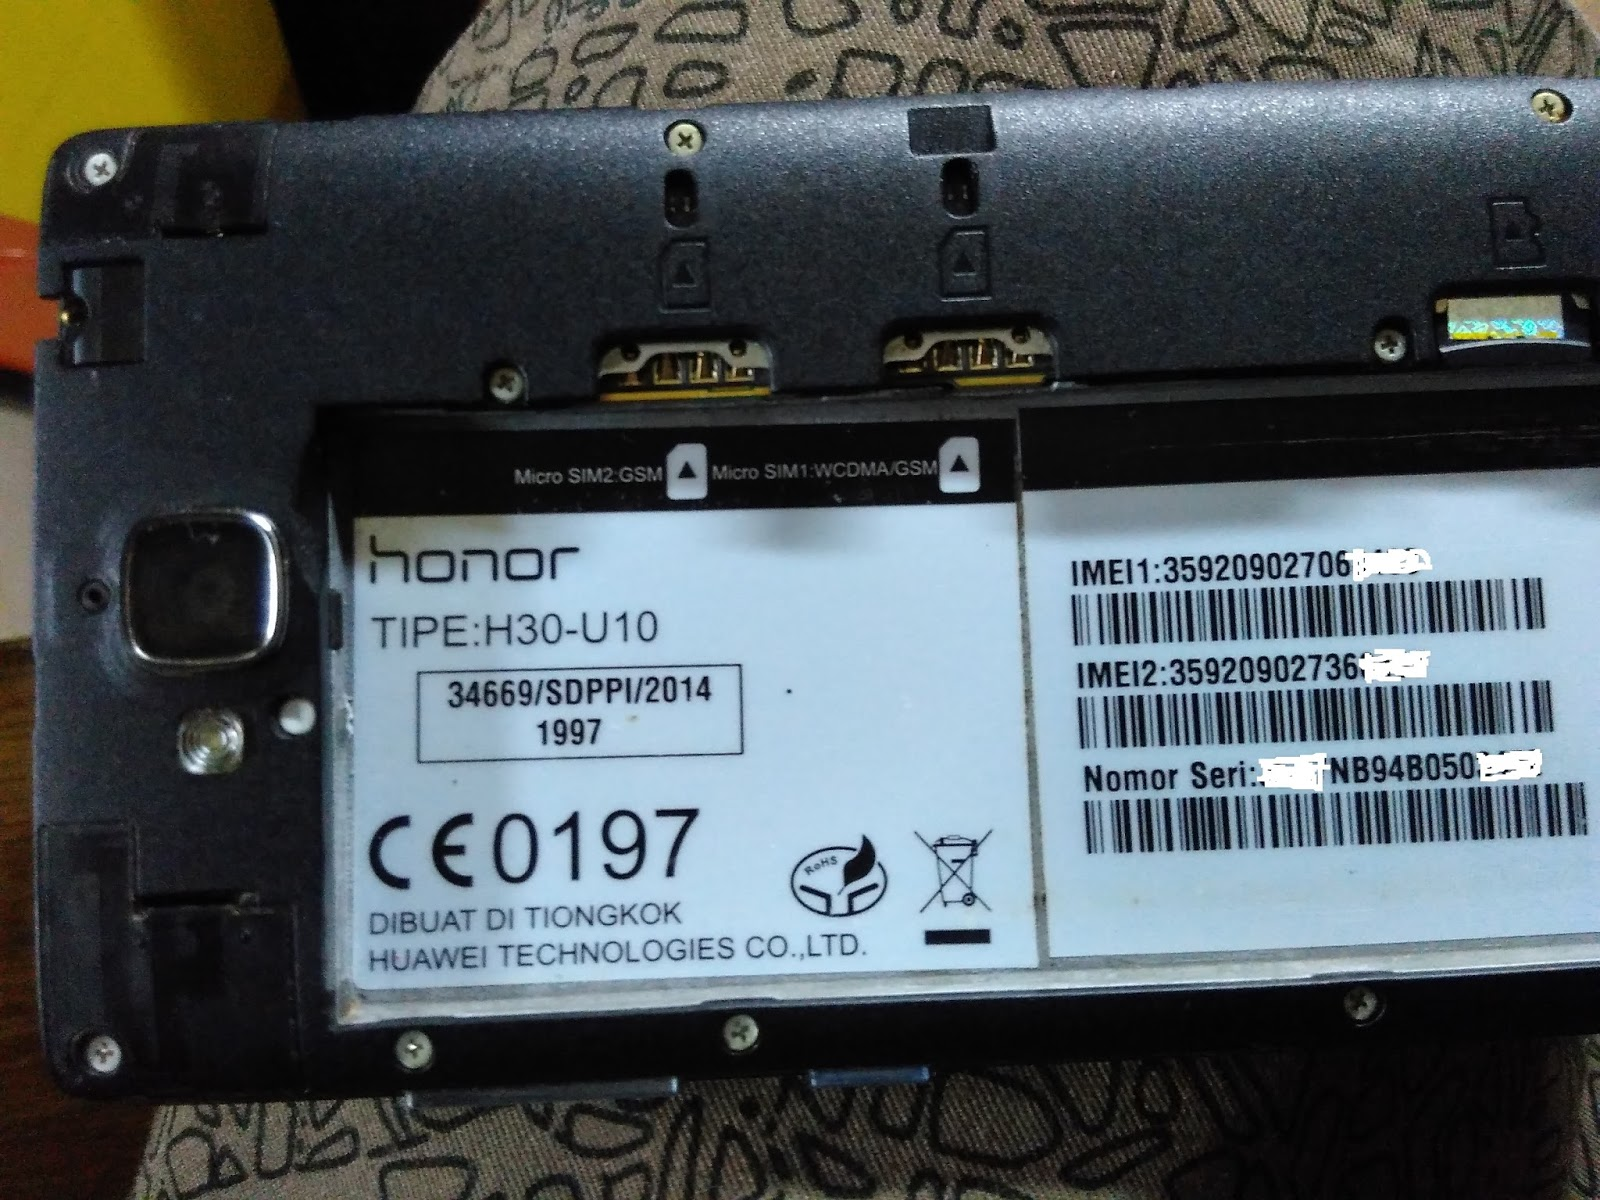 Huawei Honor 3c H30-u10 Firmware Flashtool